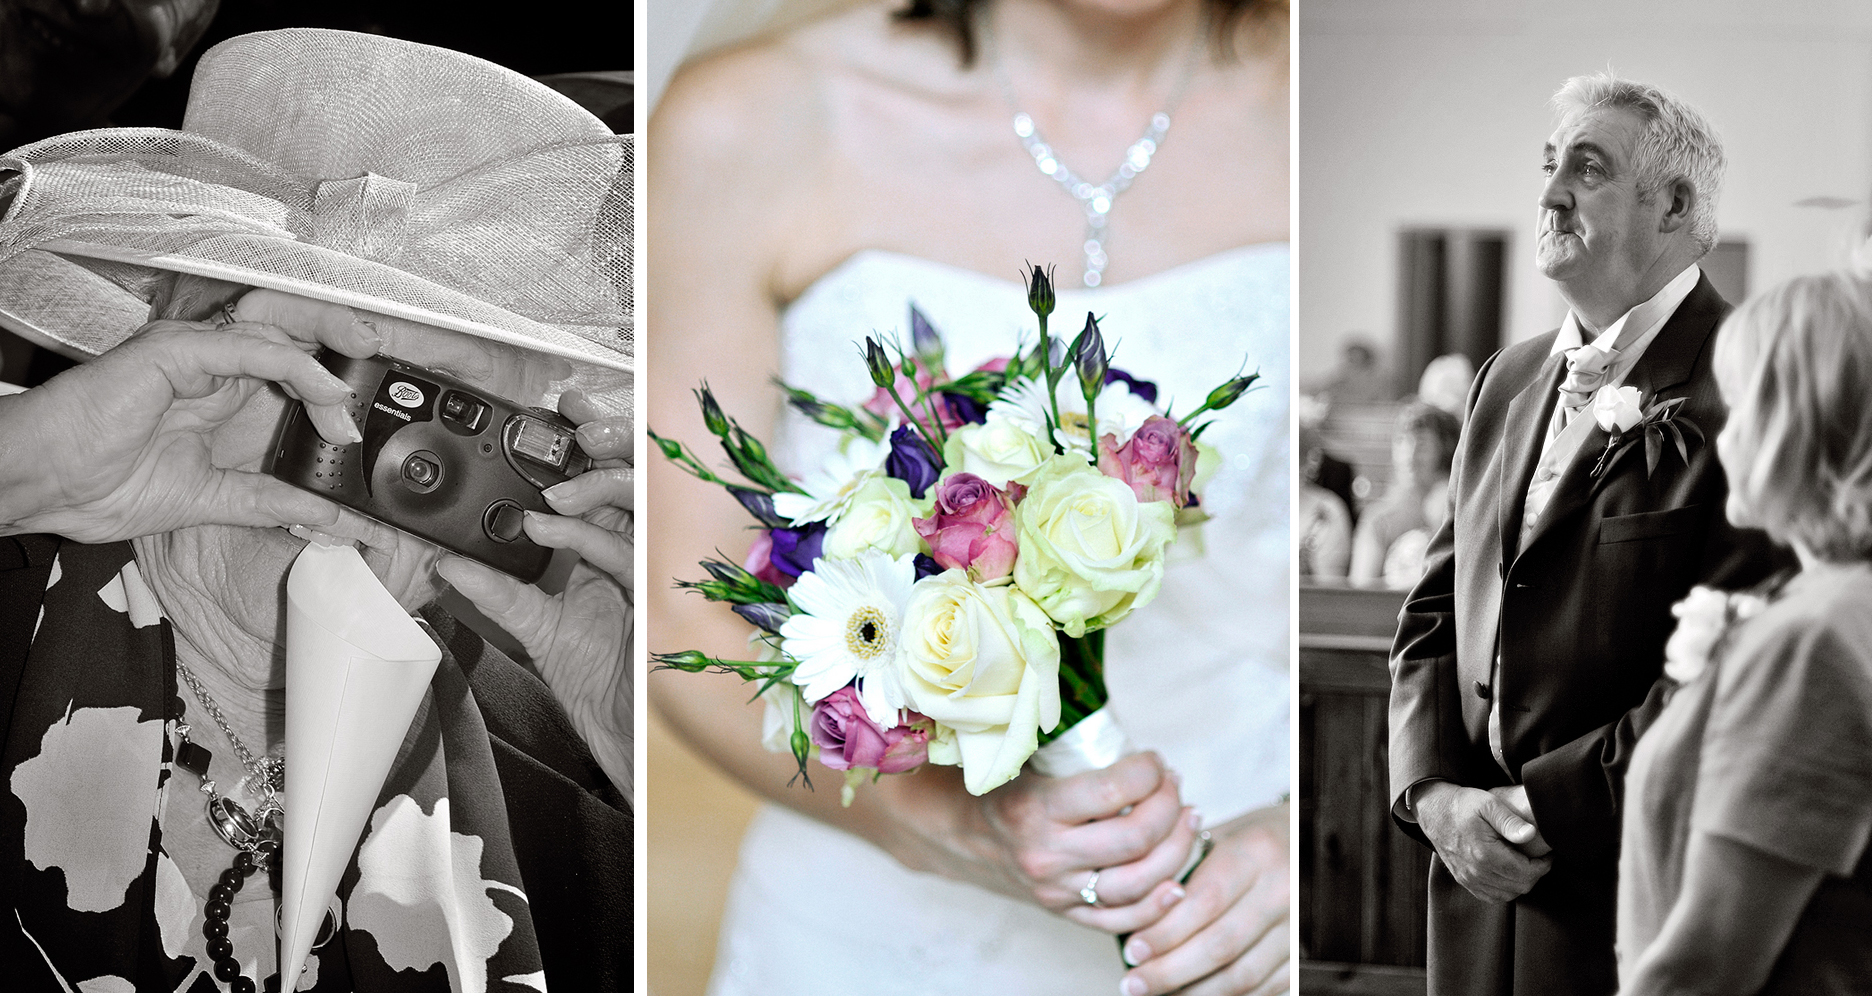 Close-ups from a wedding day